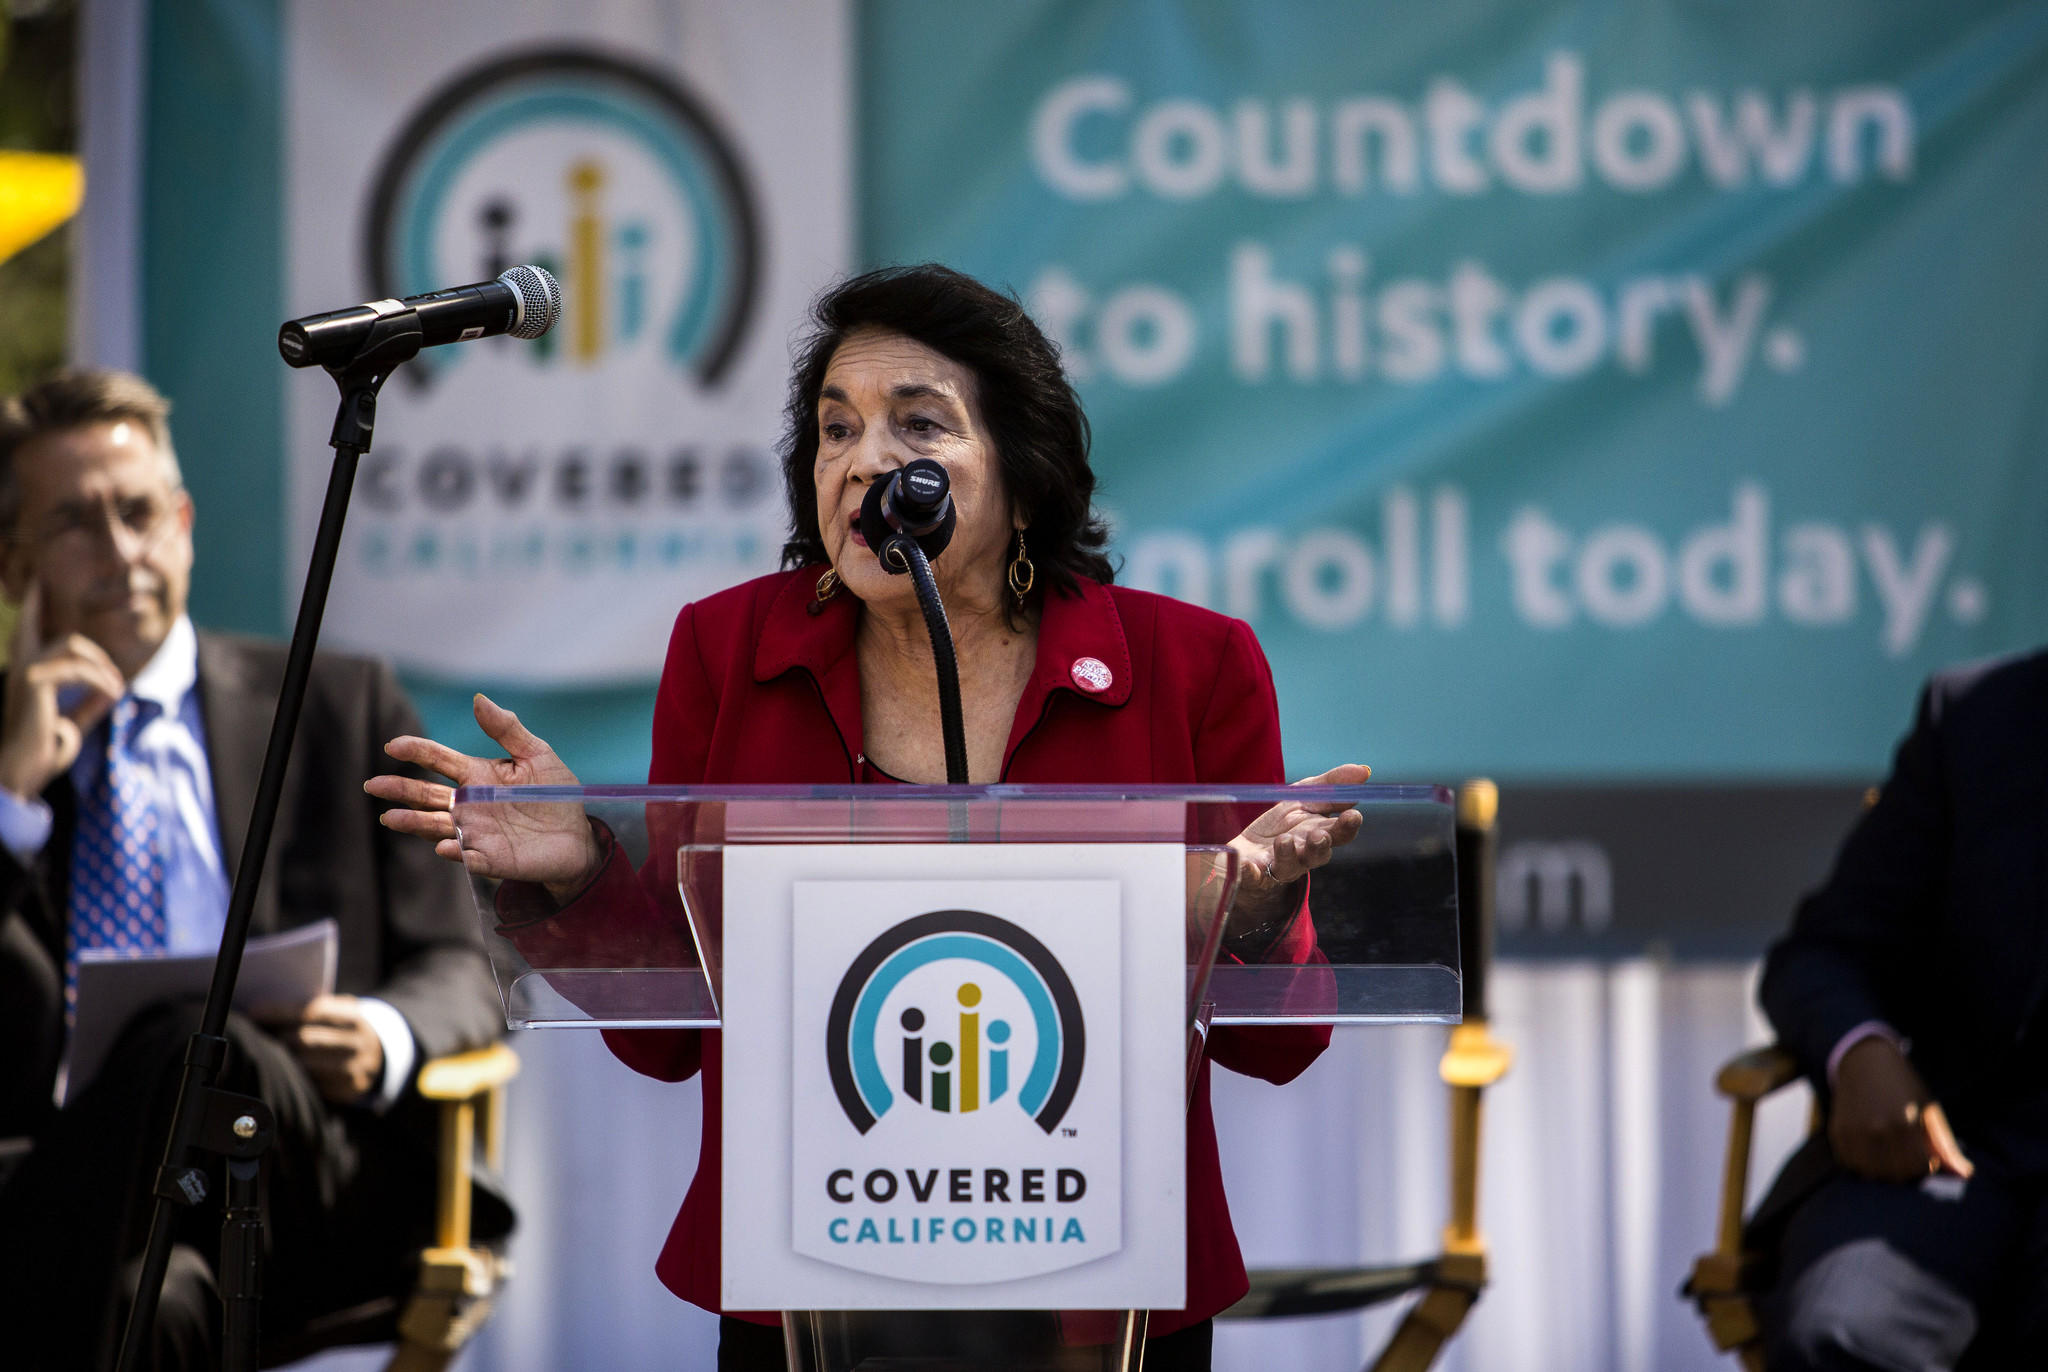 Labor leader Dolores Huerta of the United Farm Workers speaks at a recent rally in Los Angeles urging Californians to sign up for health insurance under the Affordable Care Act.